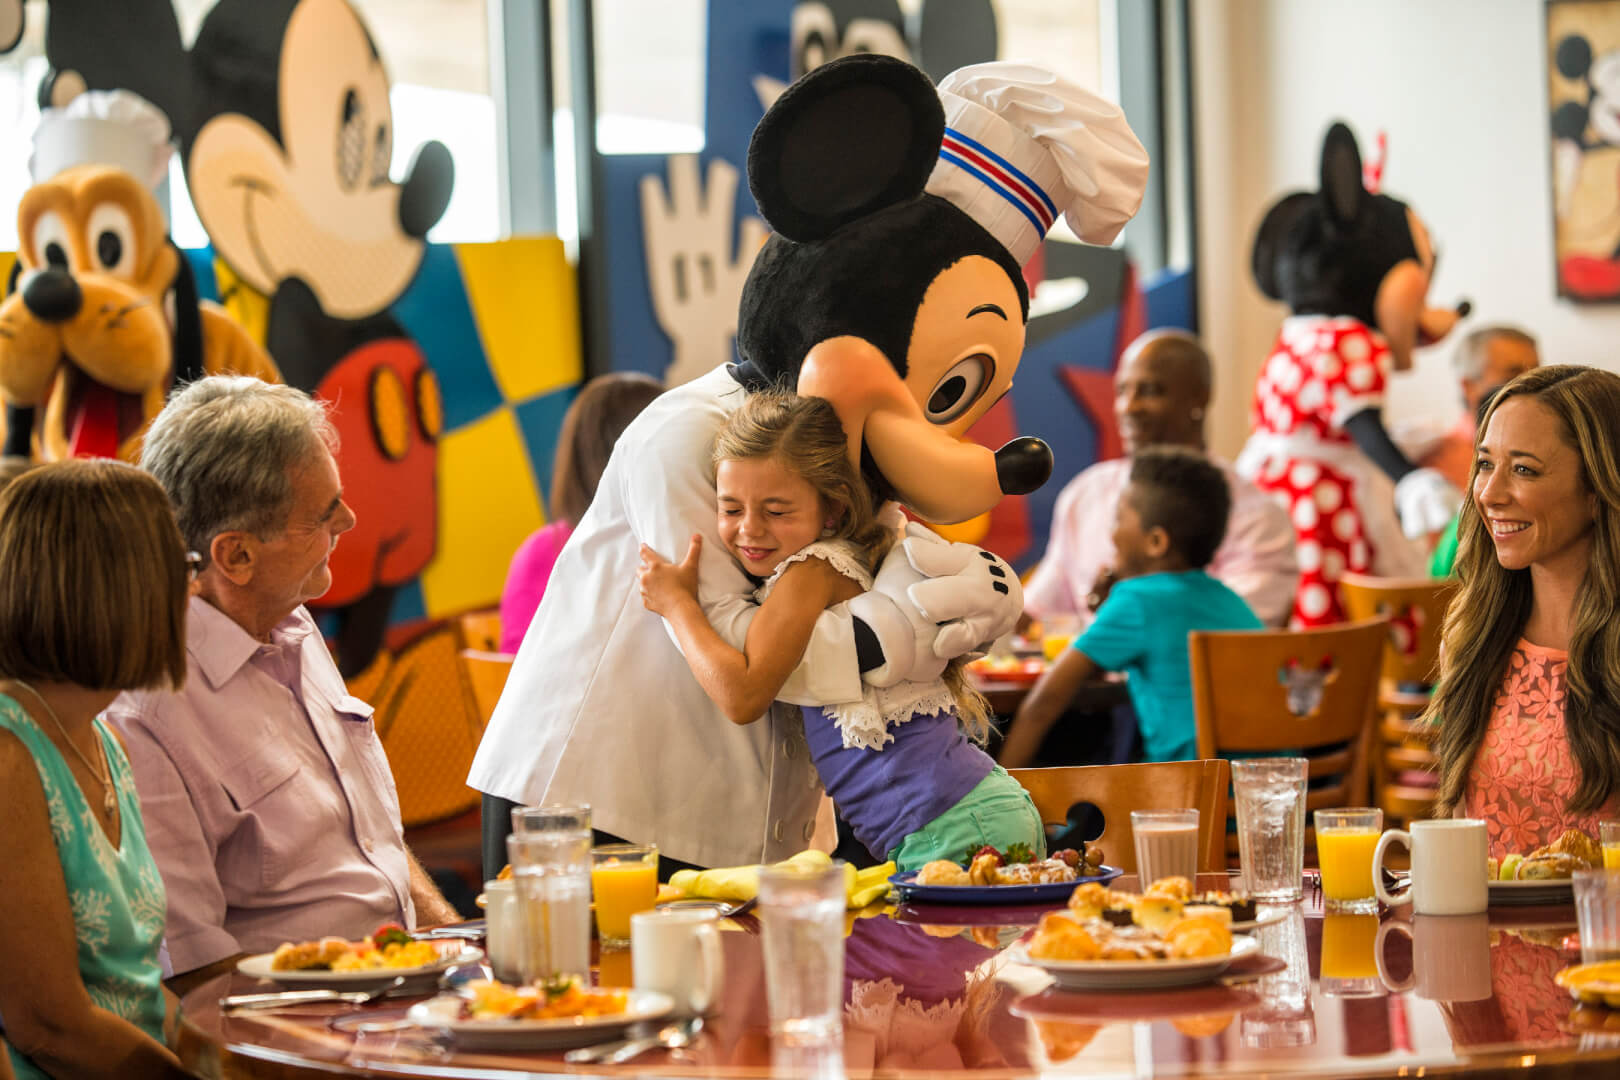 Free dining plan now being offered at walt disney world How to get free dining at disney